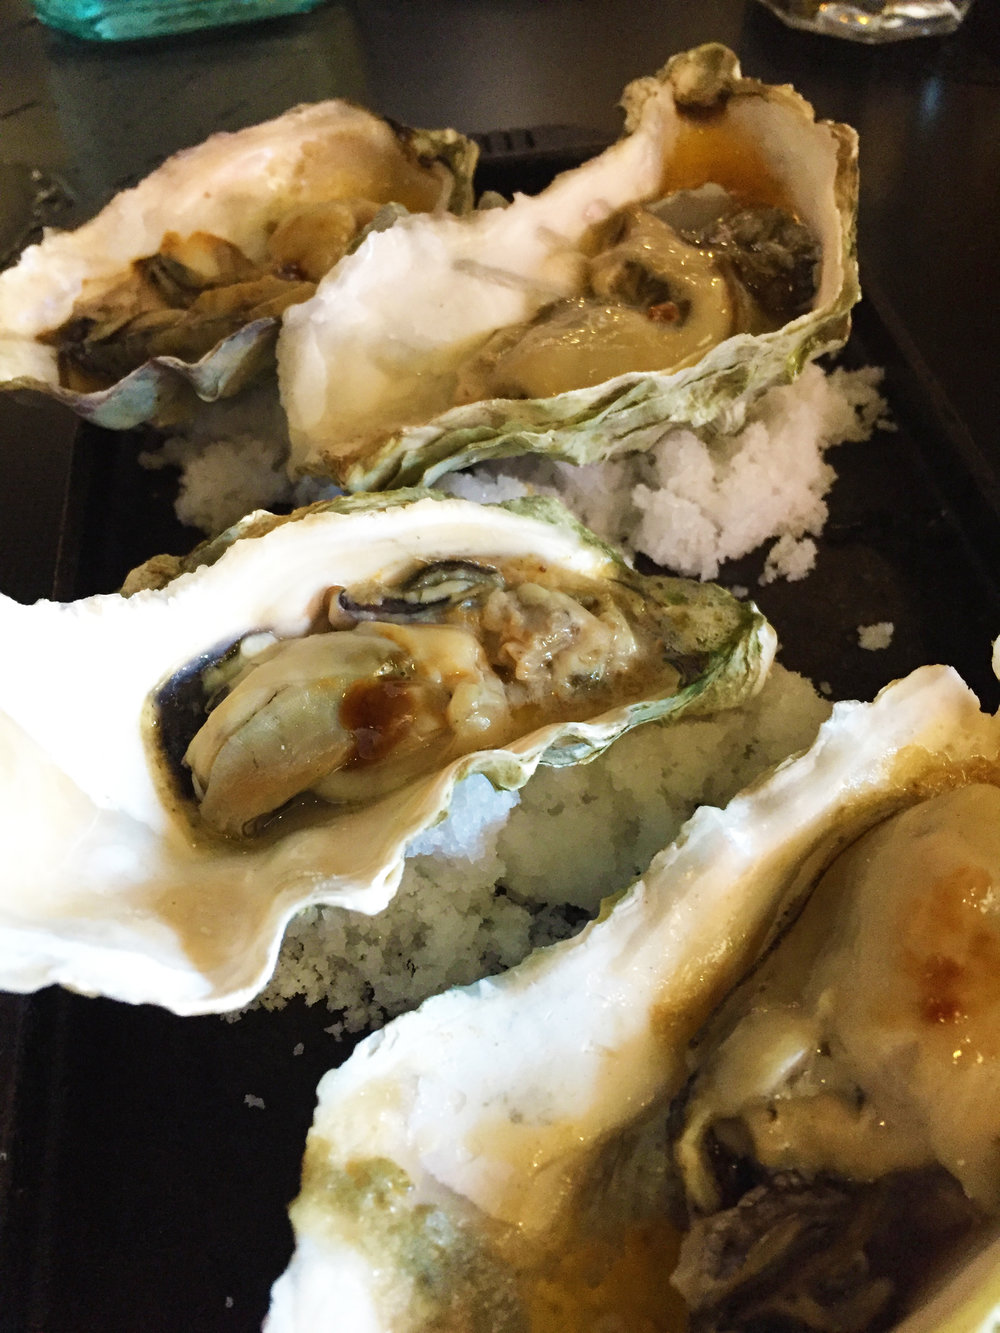 Grilled West Coast Oysters with Old Bay garlic butter.